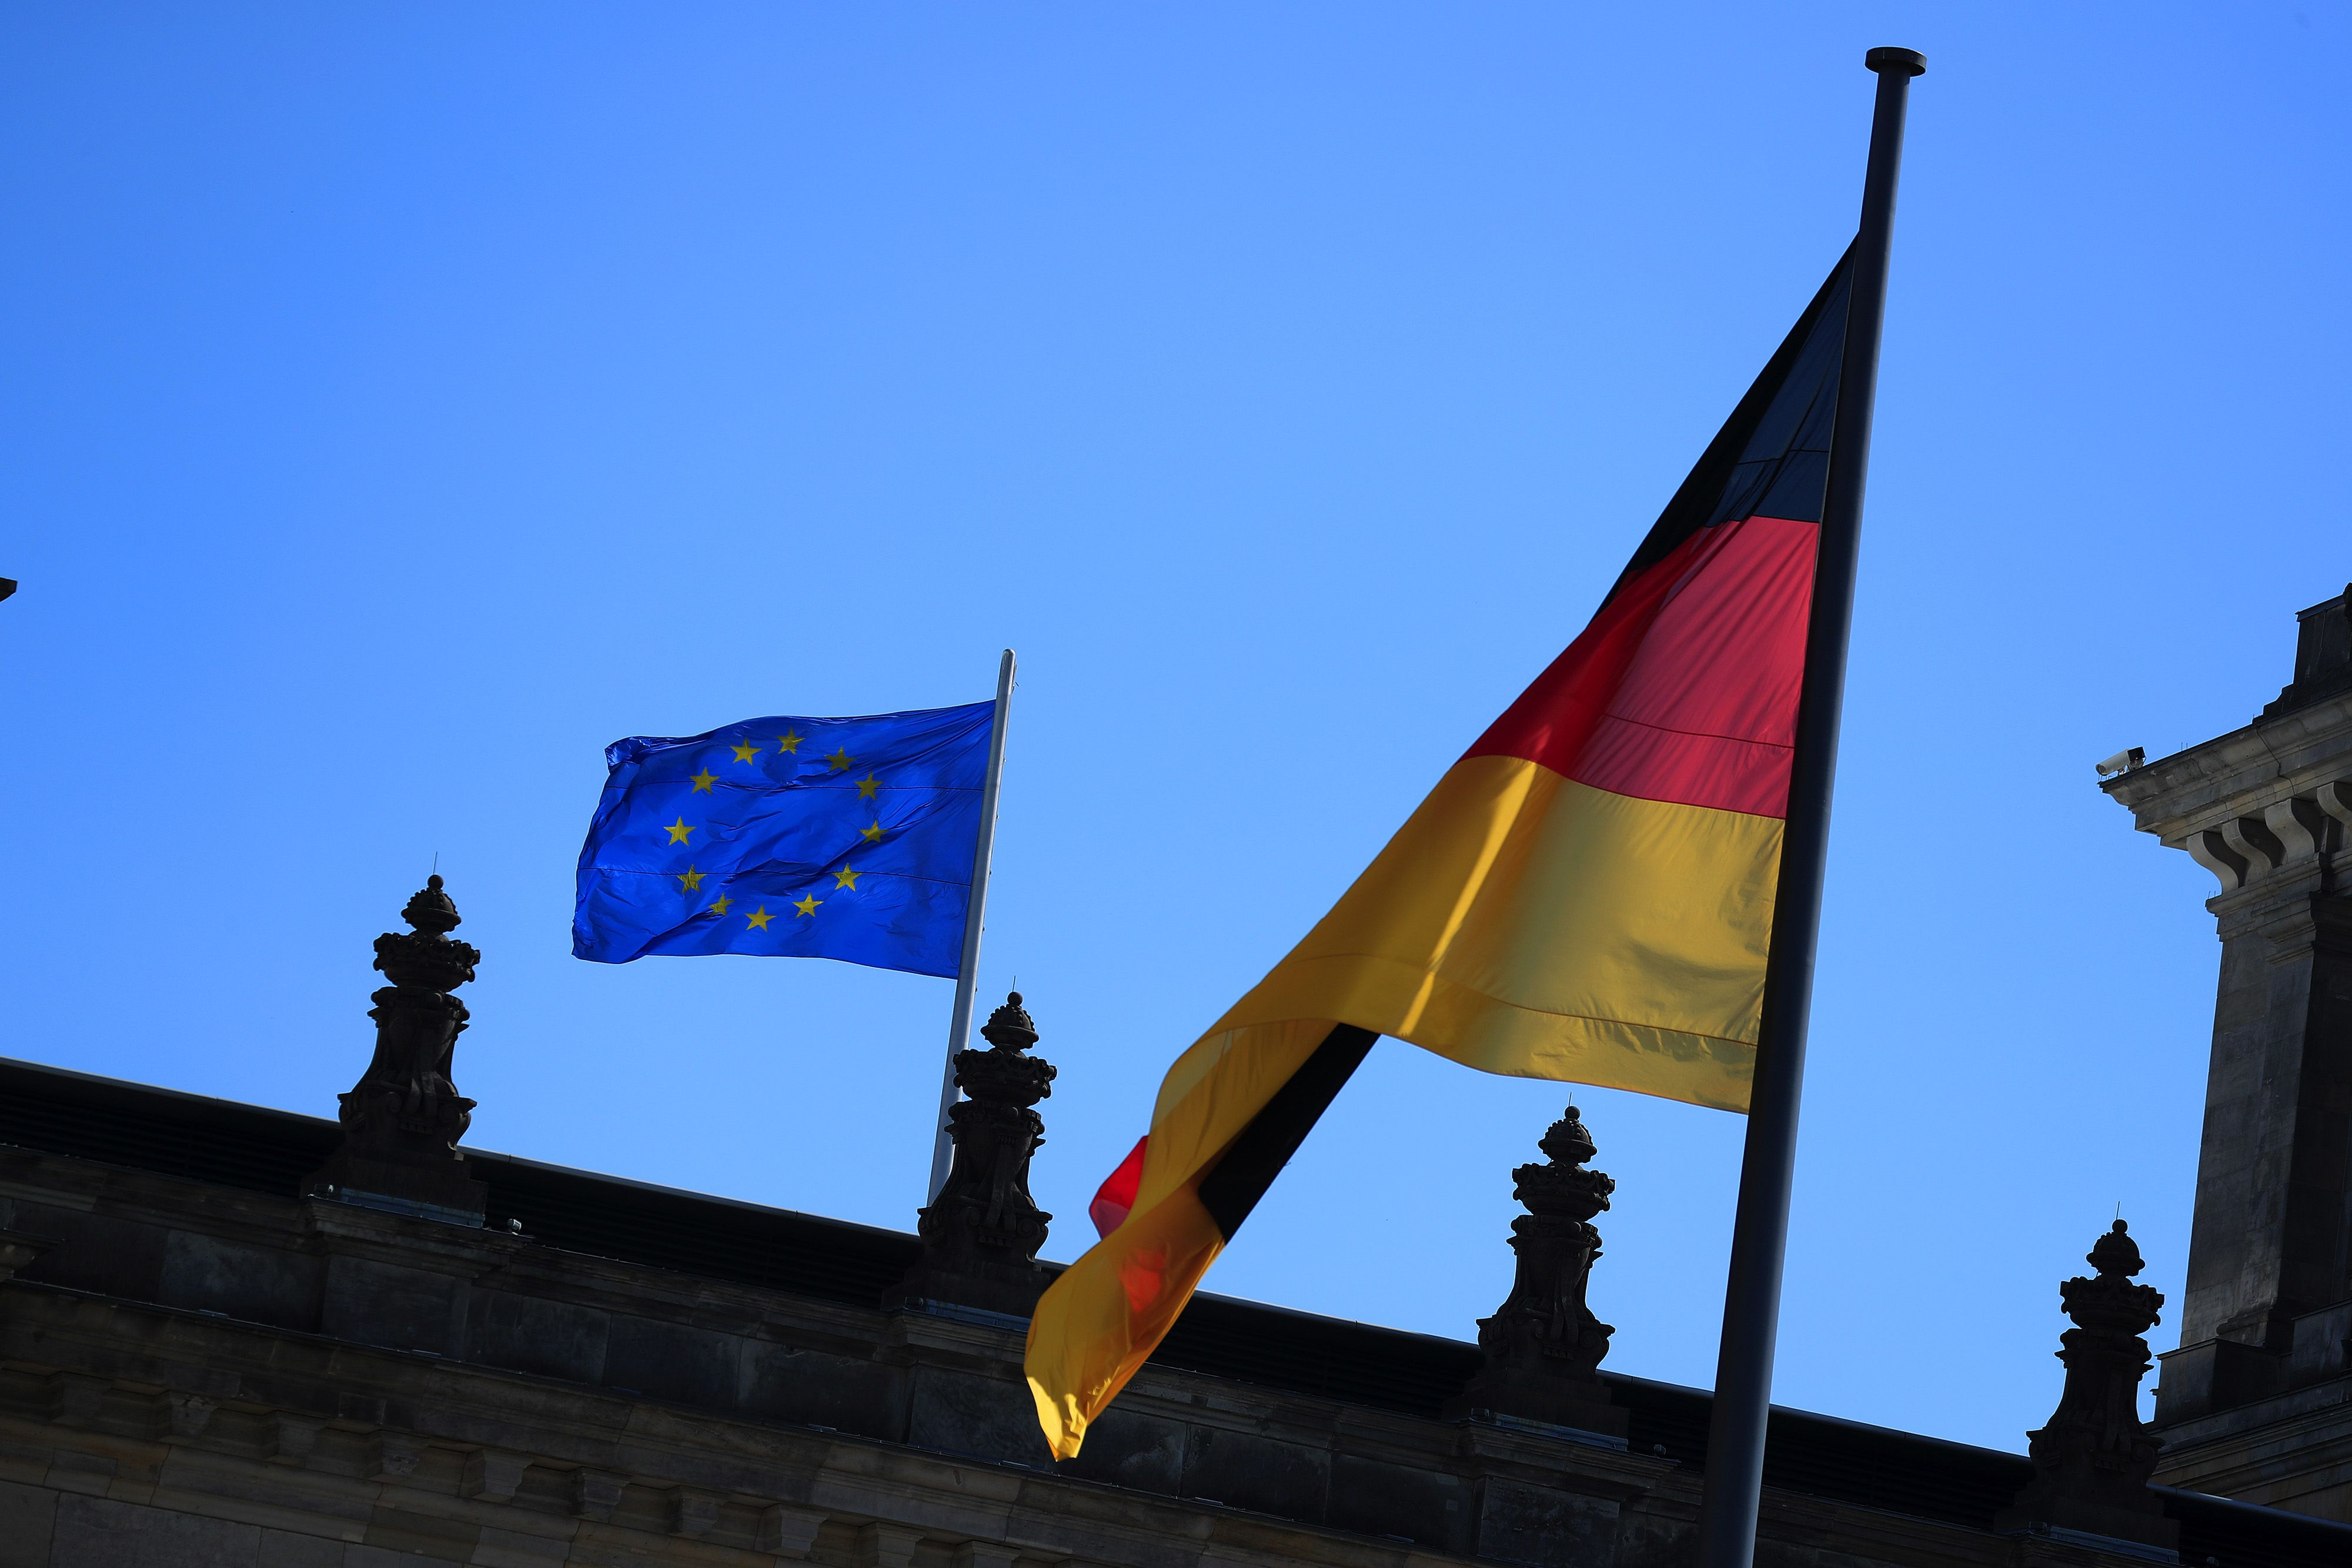 Germany backs carbon pricing in EU climate policy overhaul - document